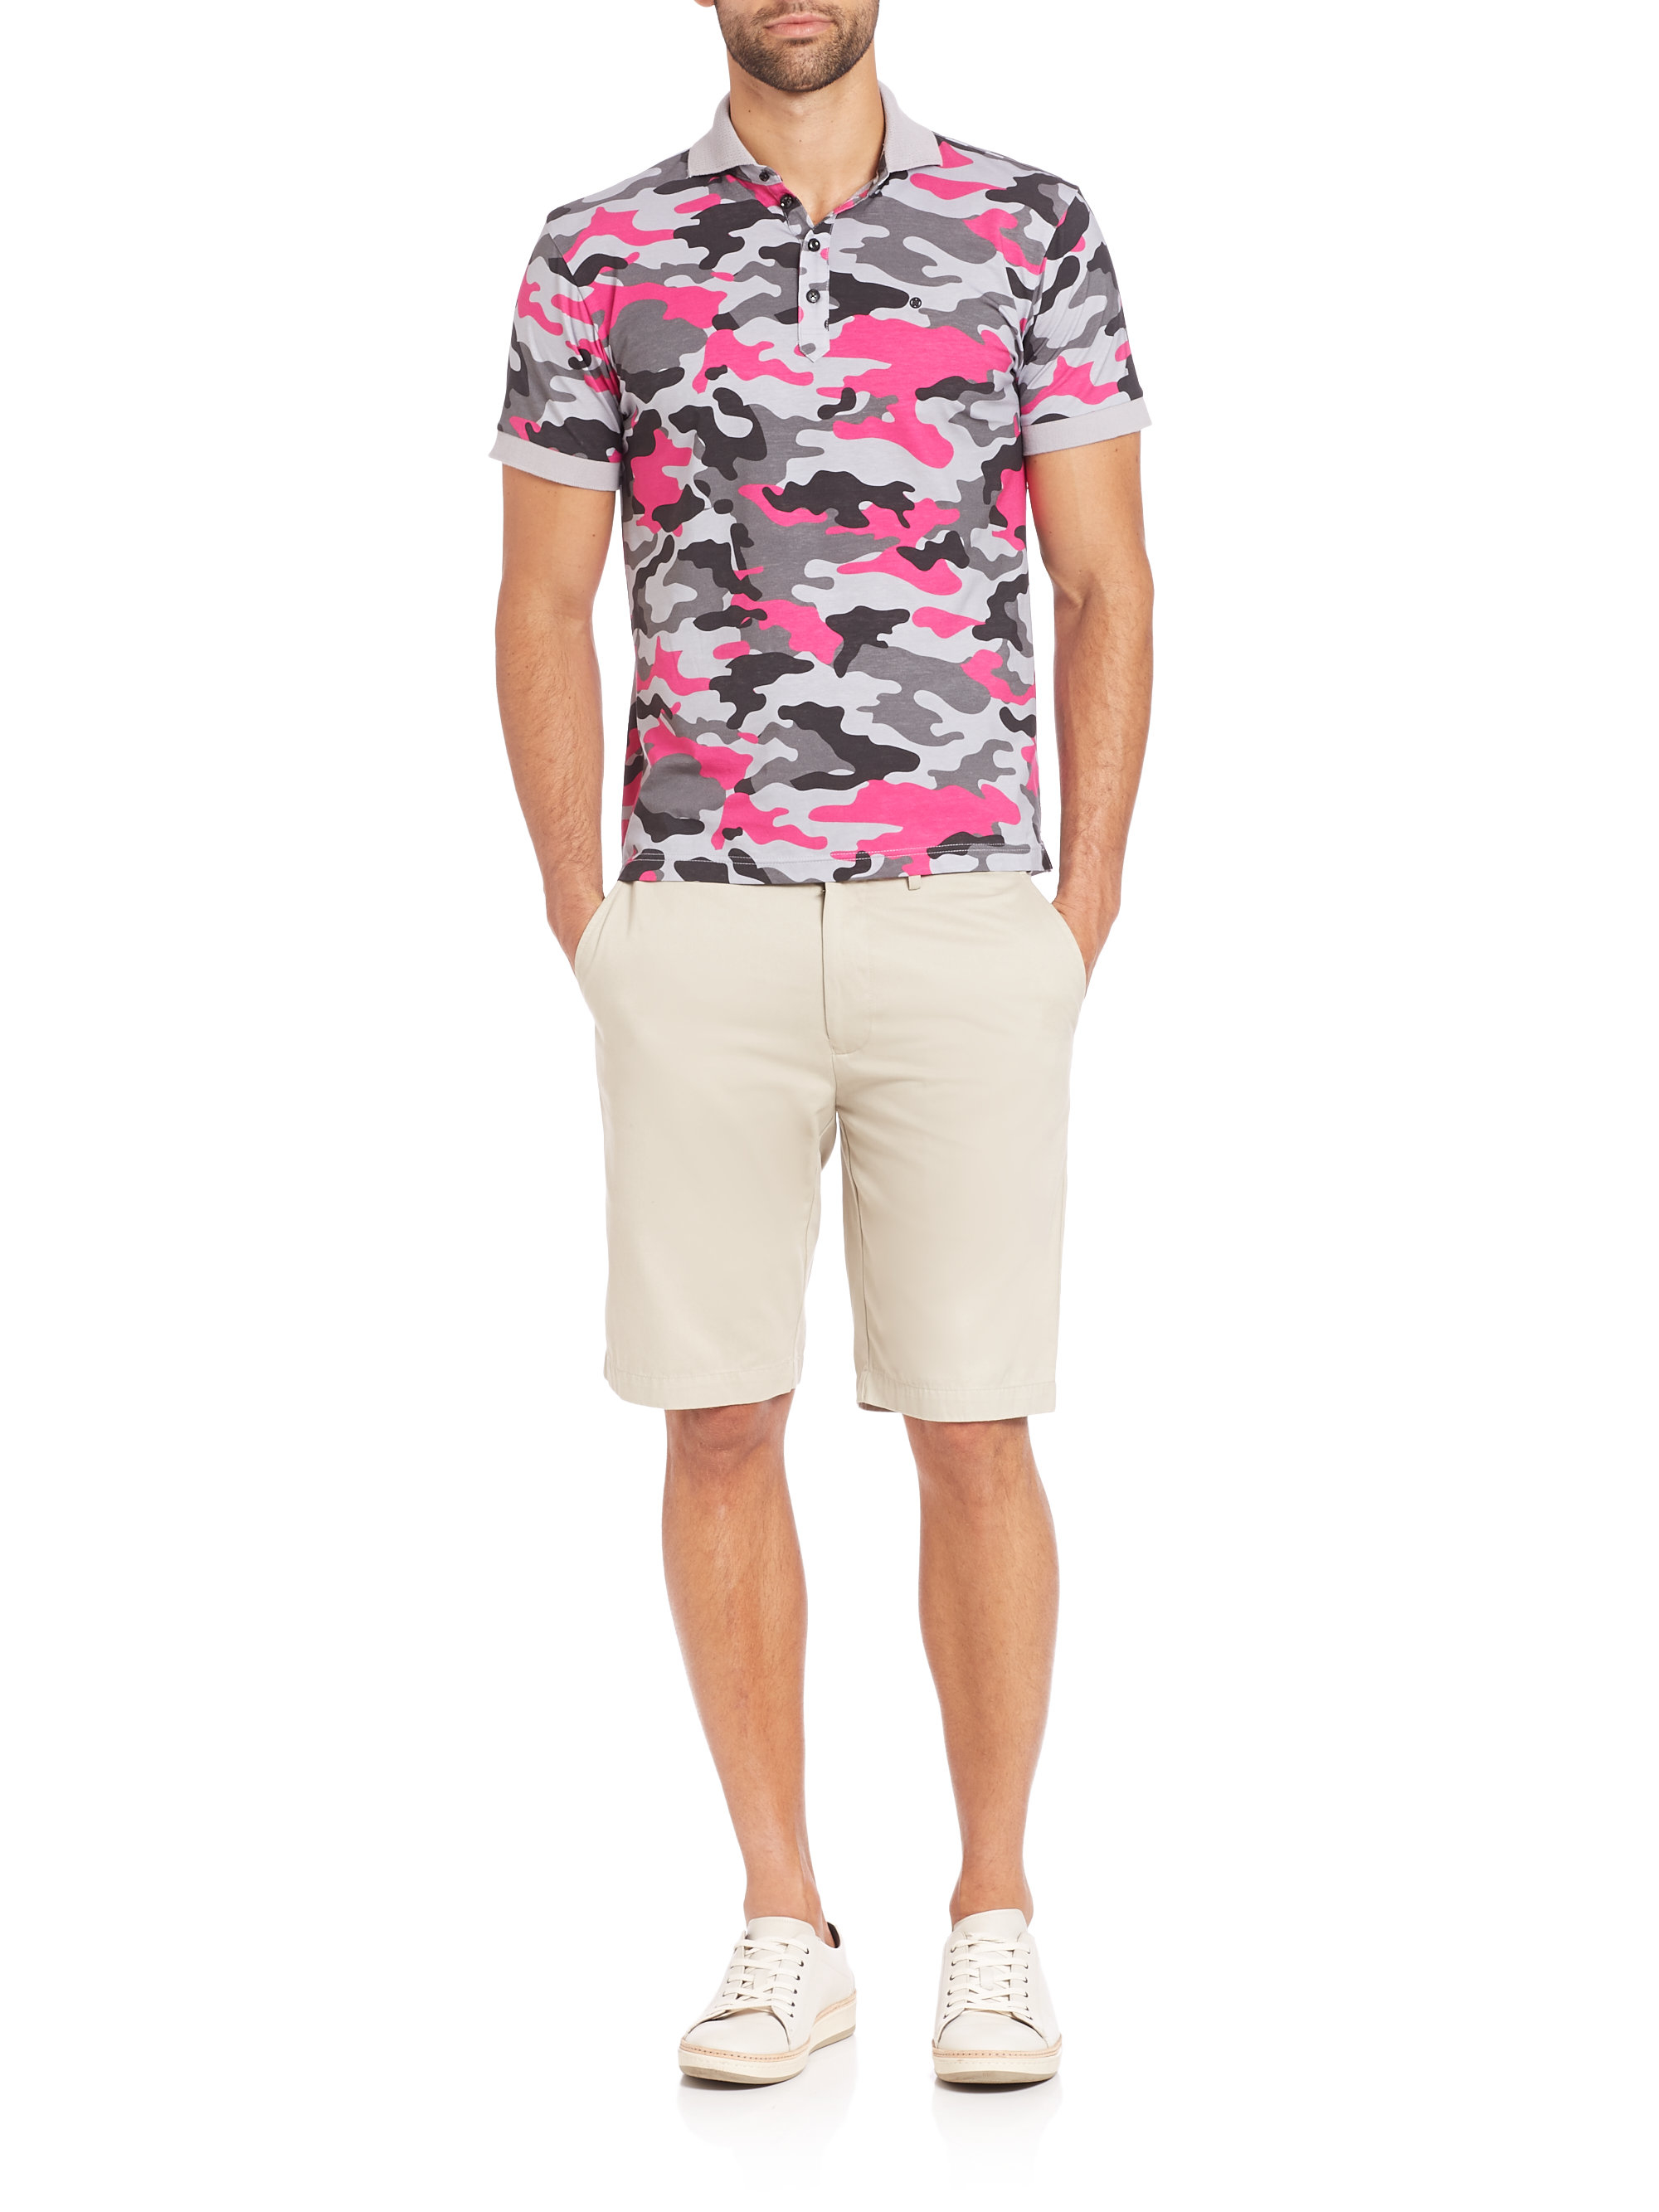 Lyst - G FORE Camo Polo in Pink for Men b289f51f3